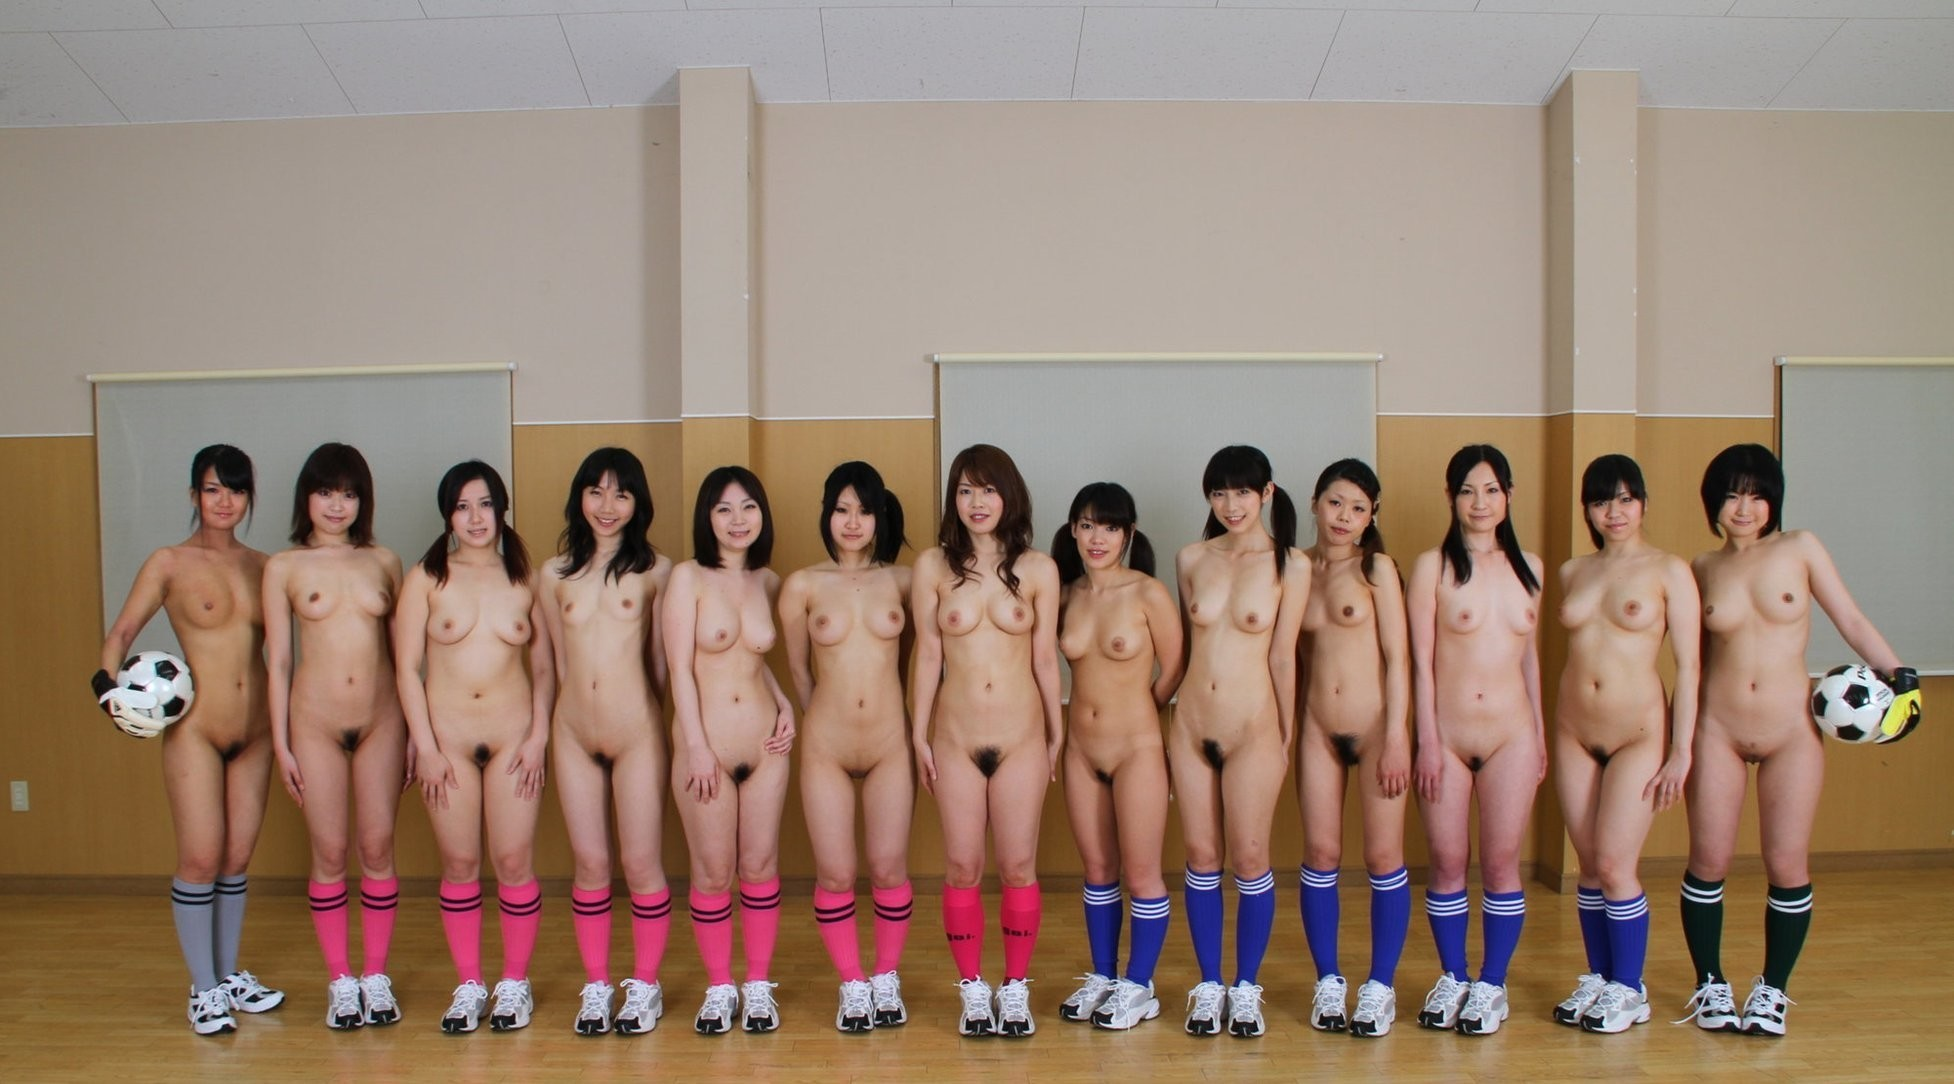 naked-girls-in-group-mix-vol3-52